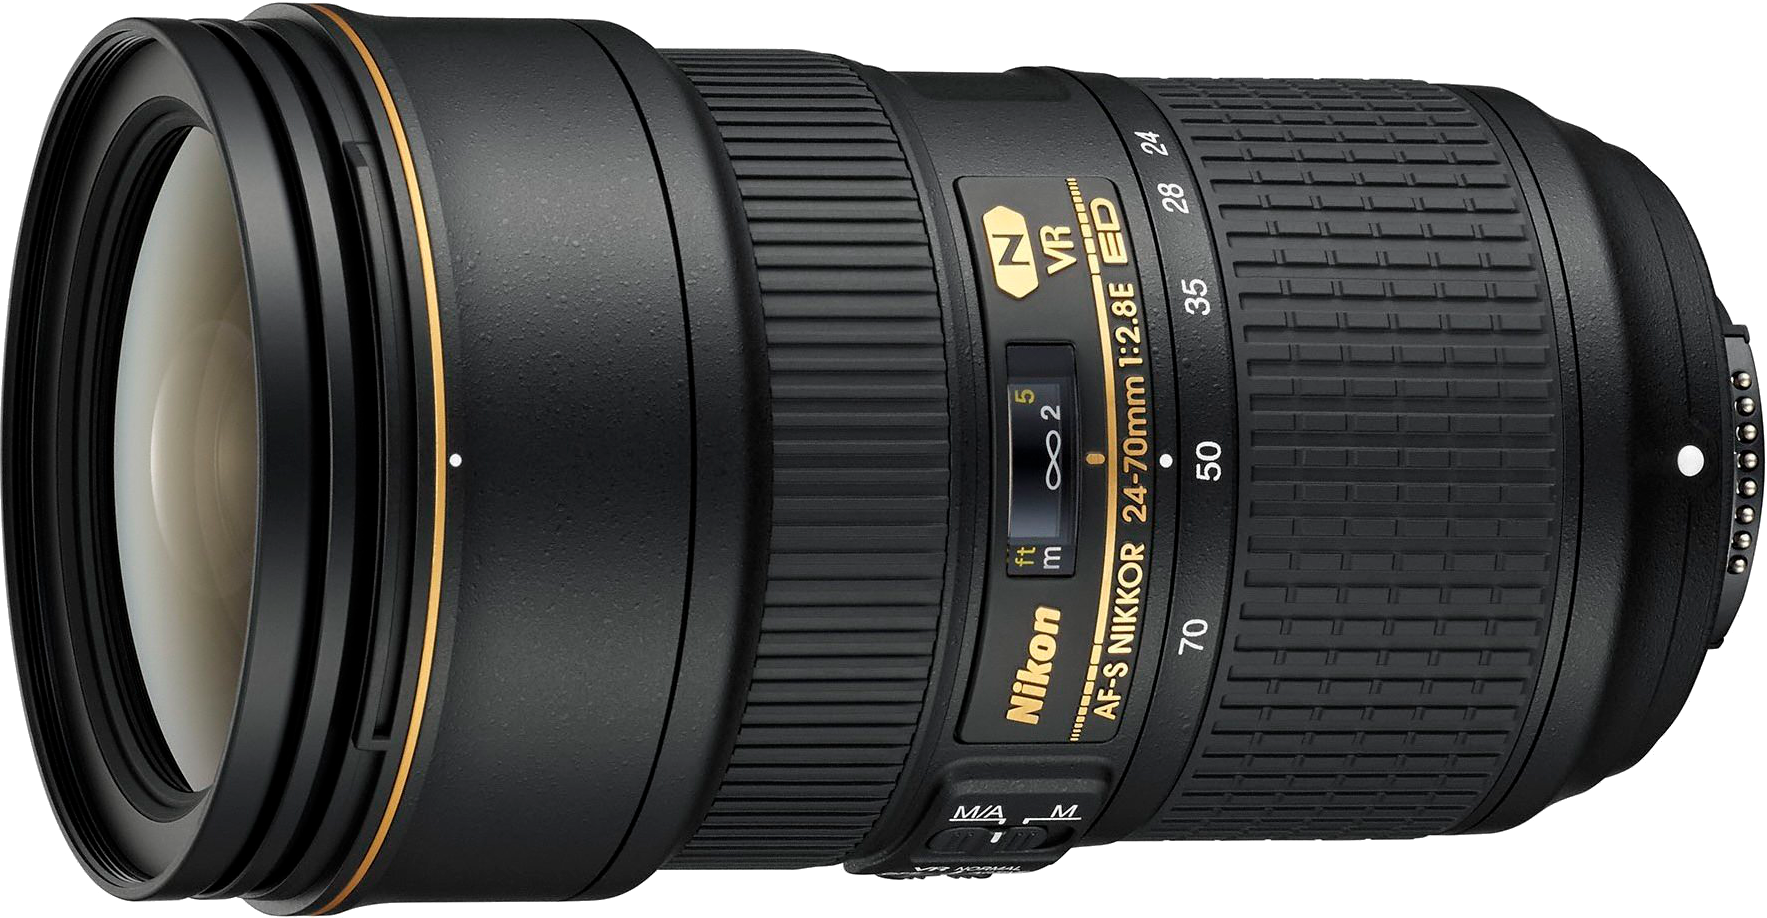 Nikon's newest 24-70mm with vibration reduction